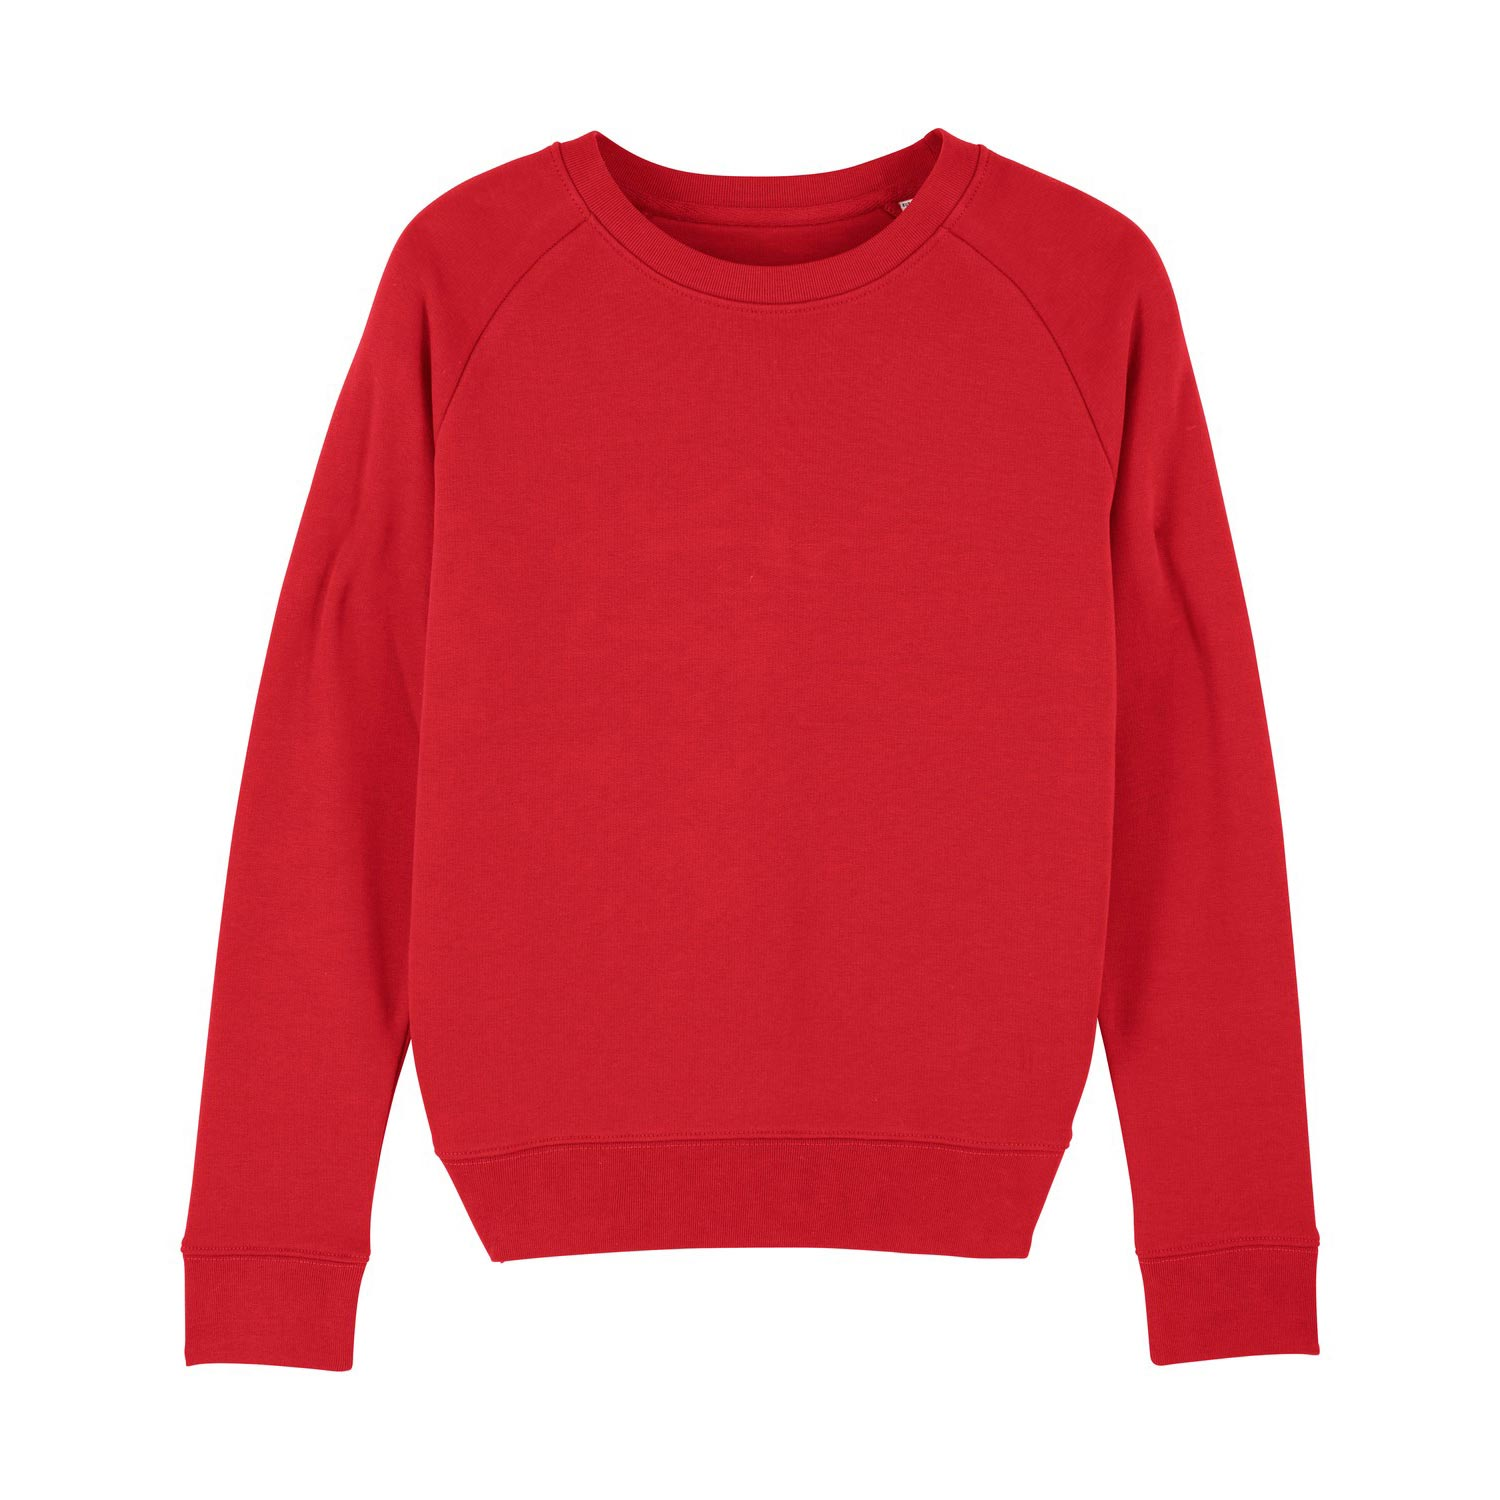 Stanley Stella Iconic Ladies' Crew Neck Sweatshirts